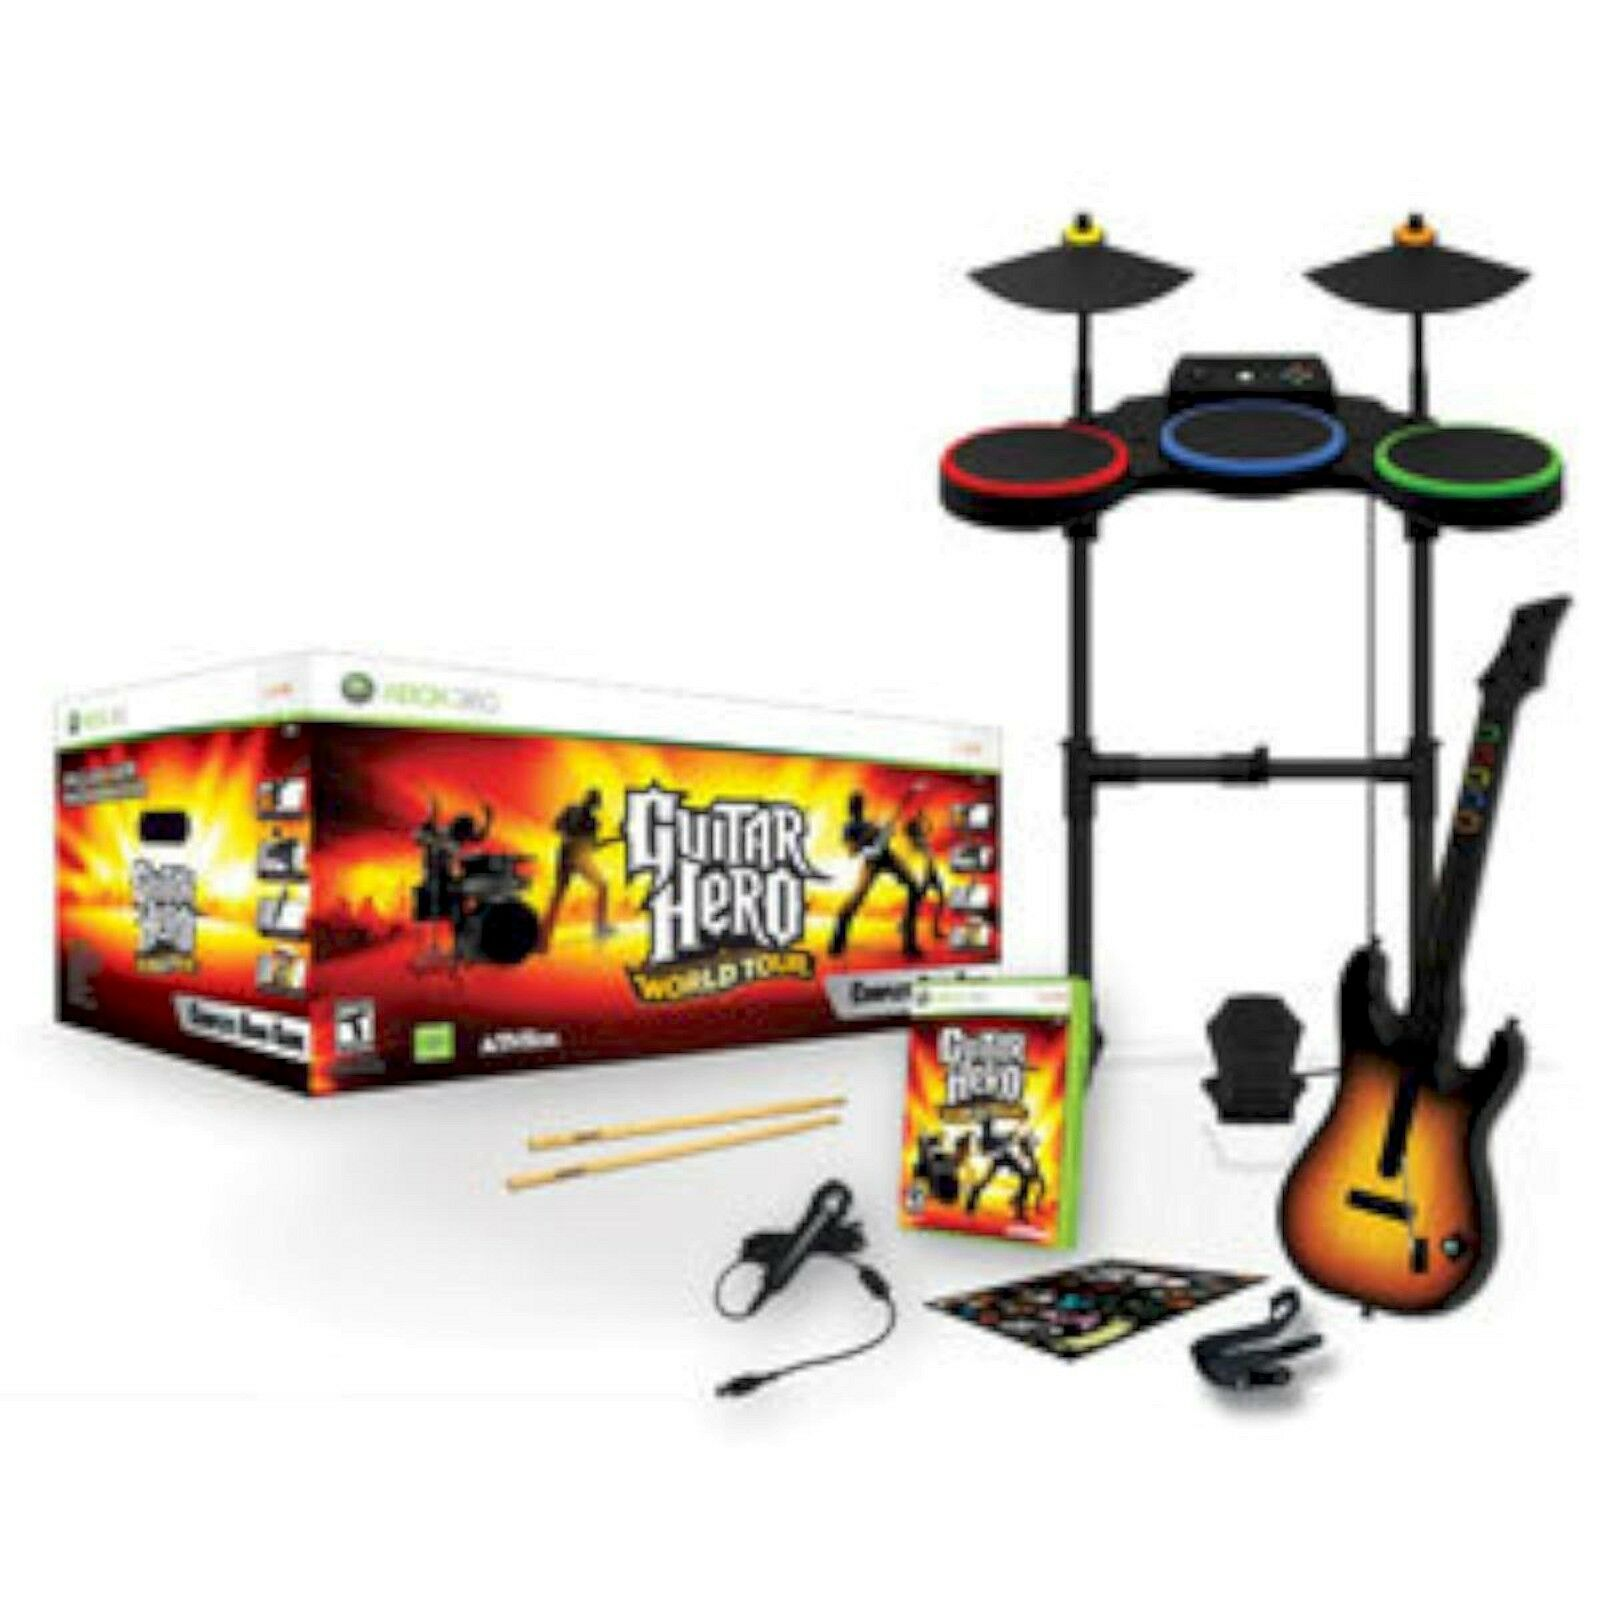 xbox 360 guitar hero world tour complete band kit set. Black Bedroom Furniture Sets. Home Design Ideas